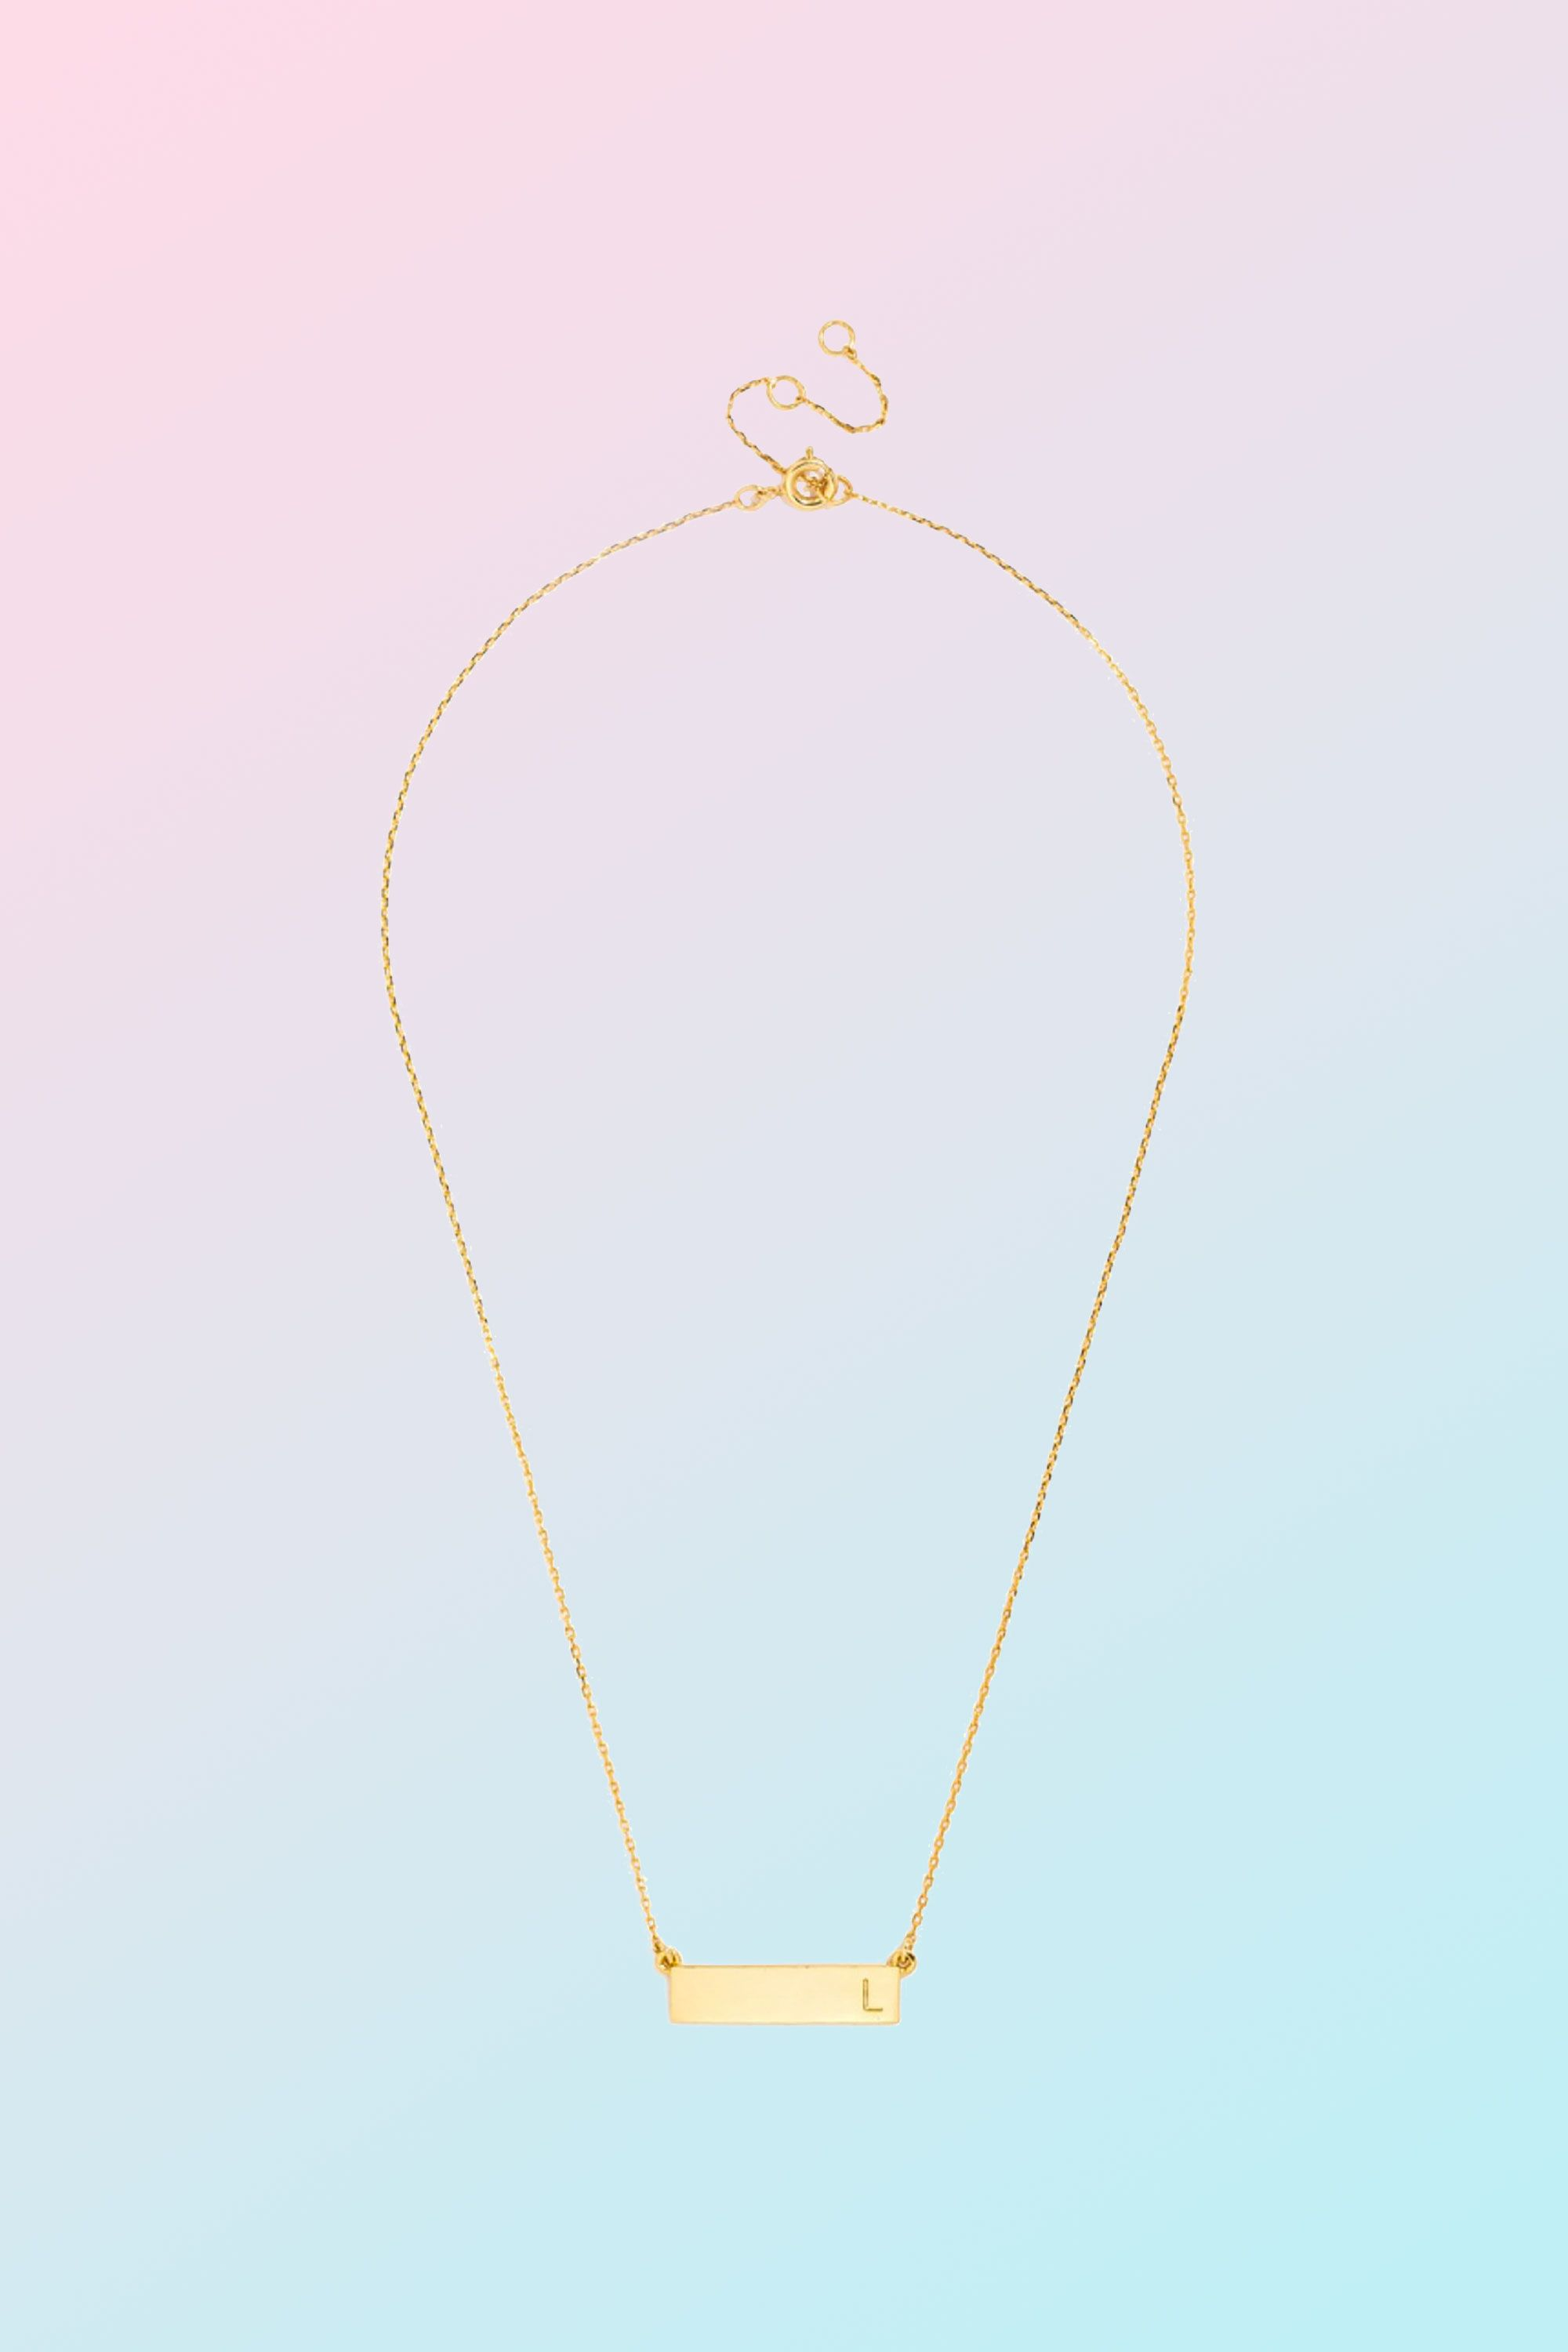 Gifts for the fashionista - Initial Bar Pendant